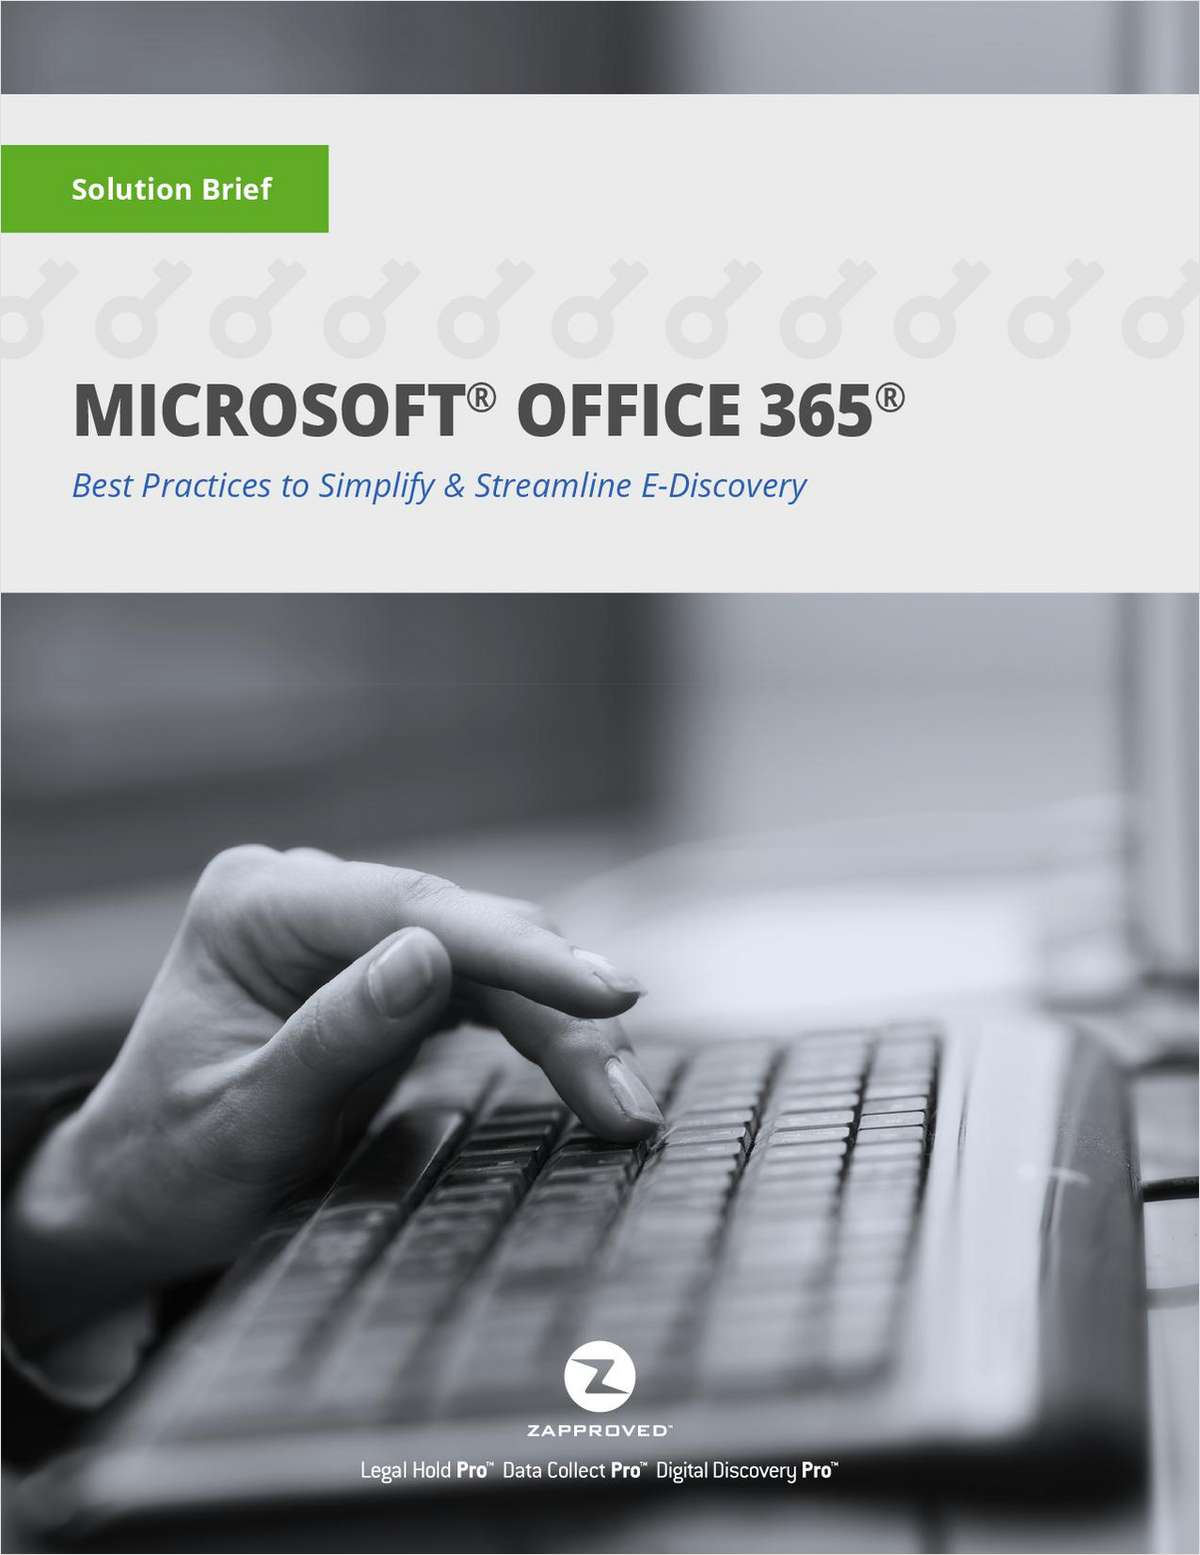 2017 solution brief microsoft office 365 request your free white paper